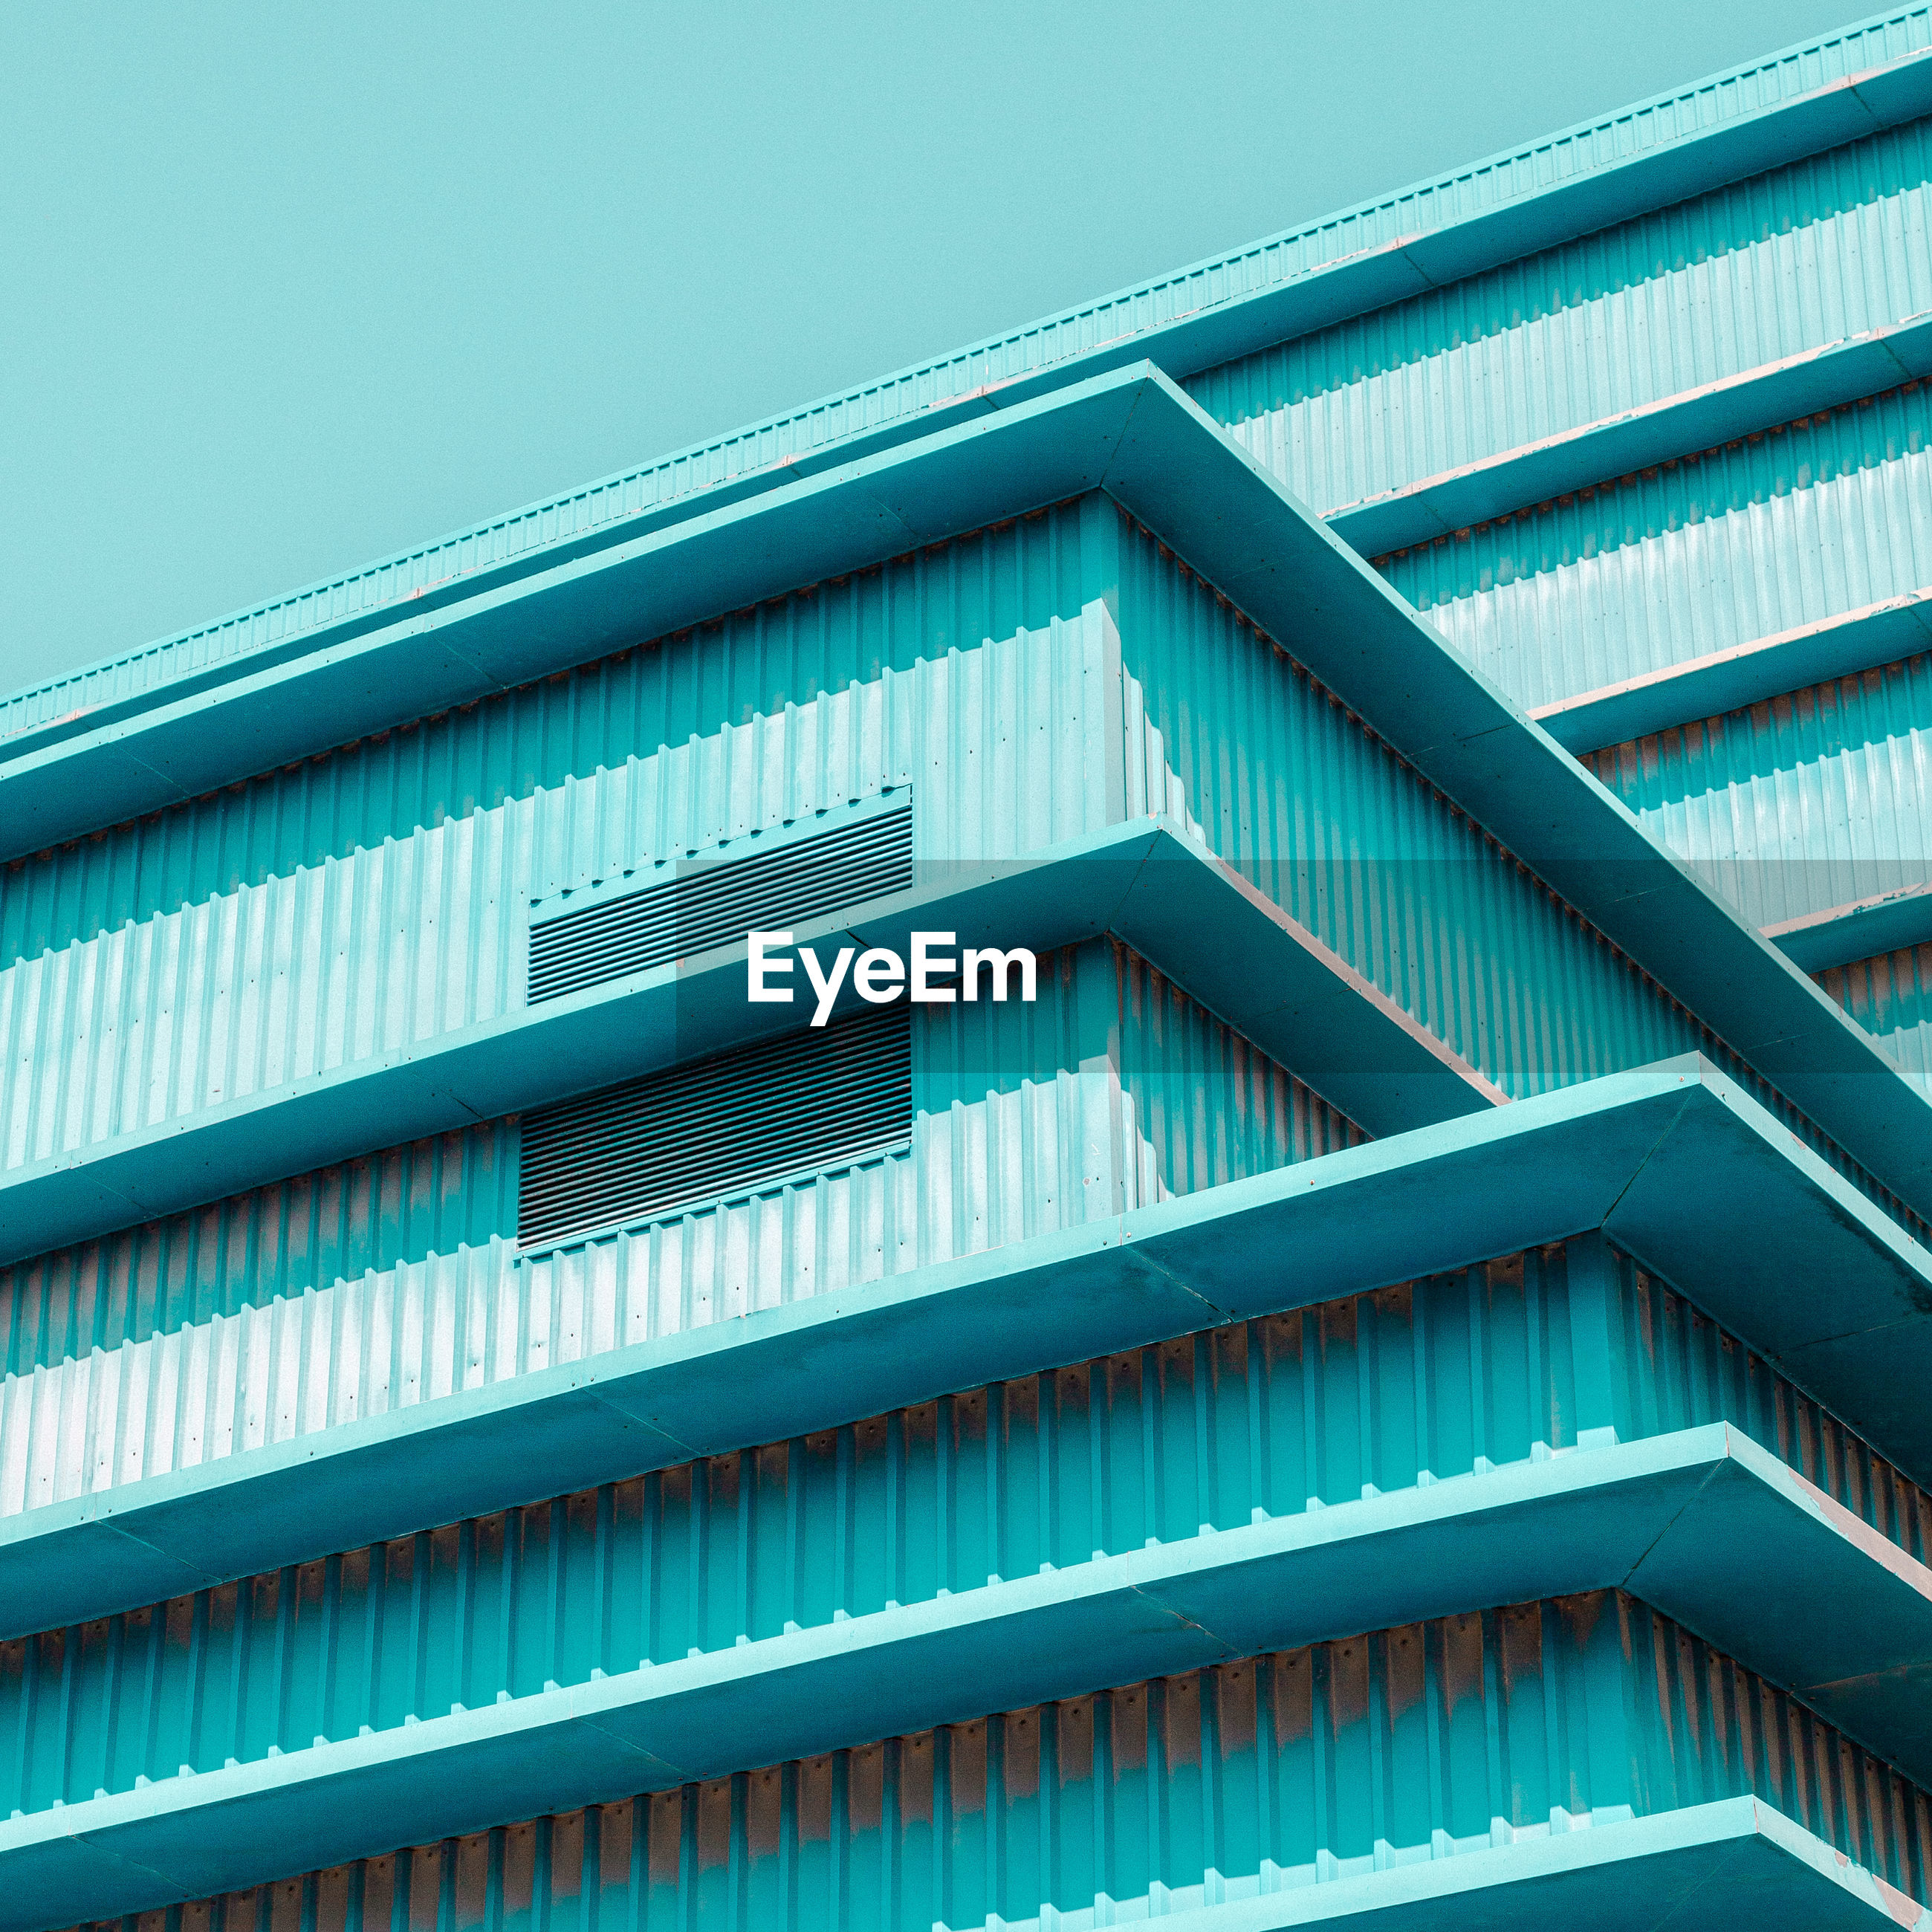 architecture, built structure, pattern, building exterior, low angle view, no people, blue, building, repetition, day, clear sky, full frame, sky, modern, nature, backgrounds, side by side, outdoors, sunlight, metal, turquoise colored